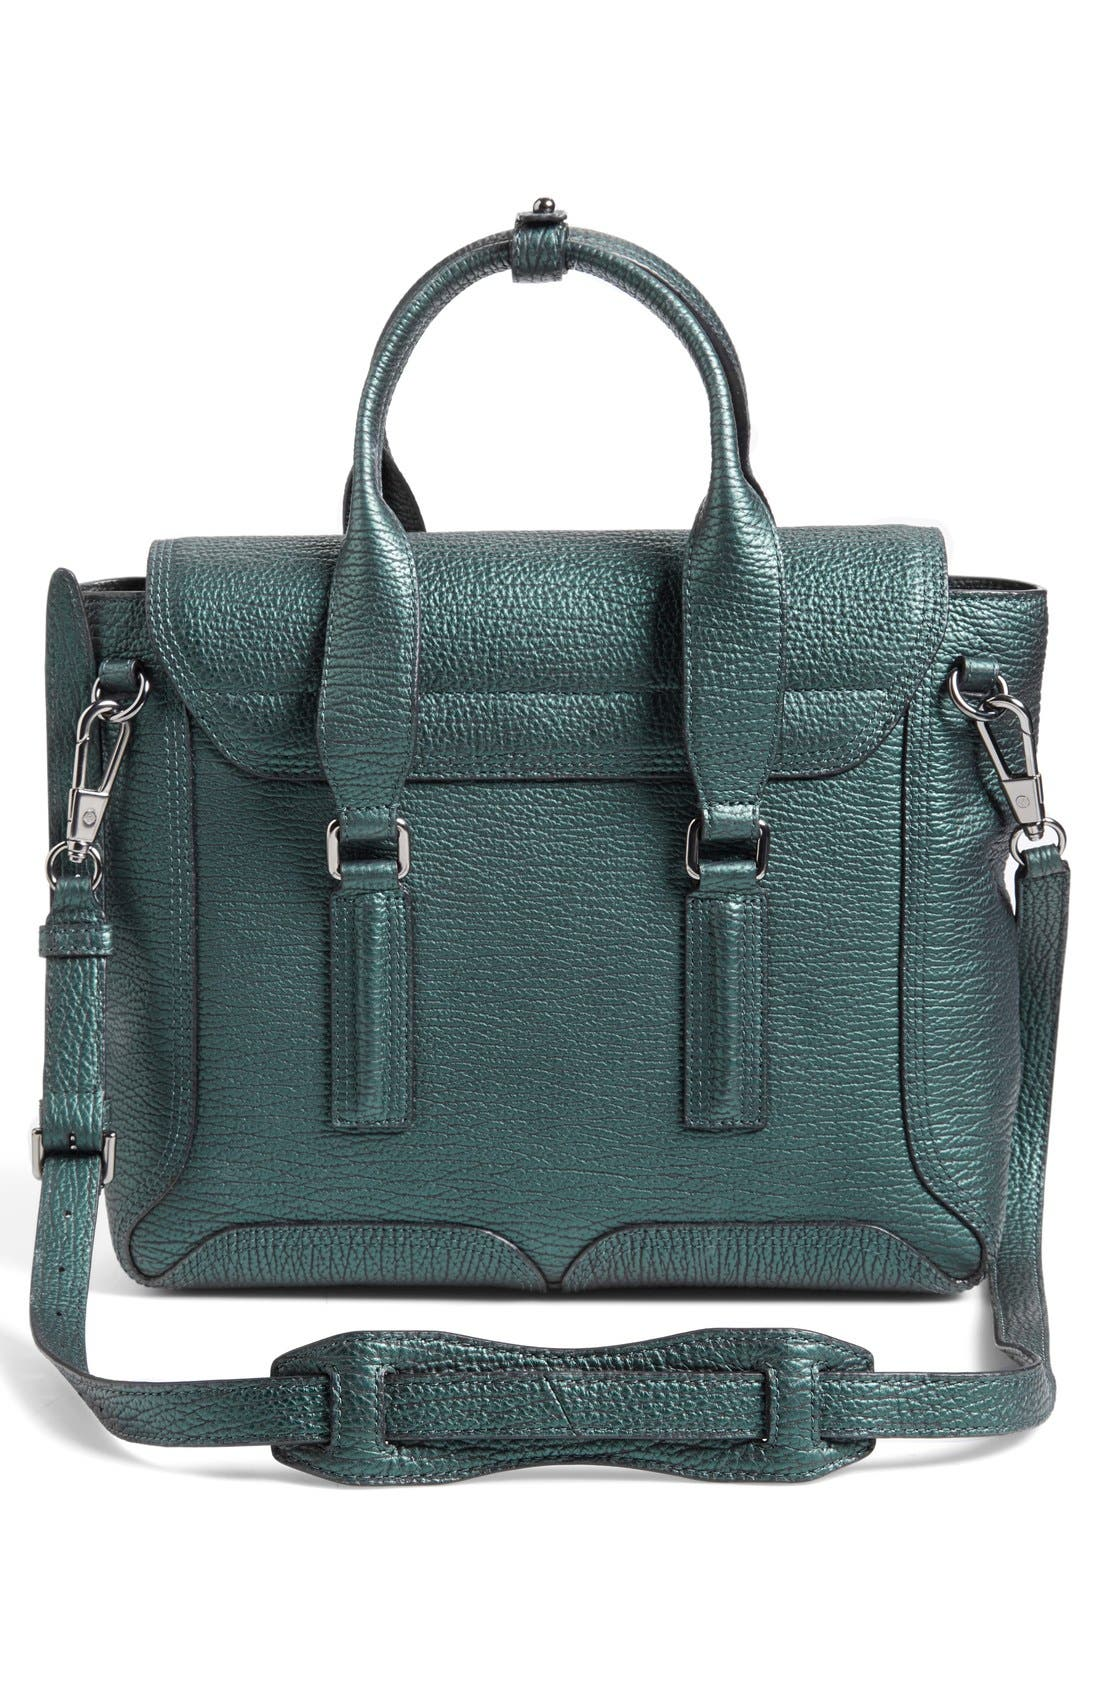 Alternate Image 2  - 3.1 Phillip Lim 'Pashli Medium' Leather Satchel